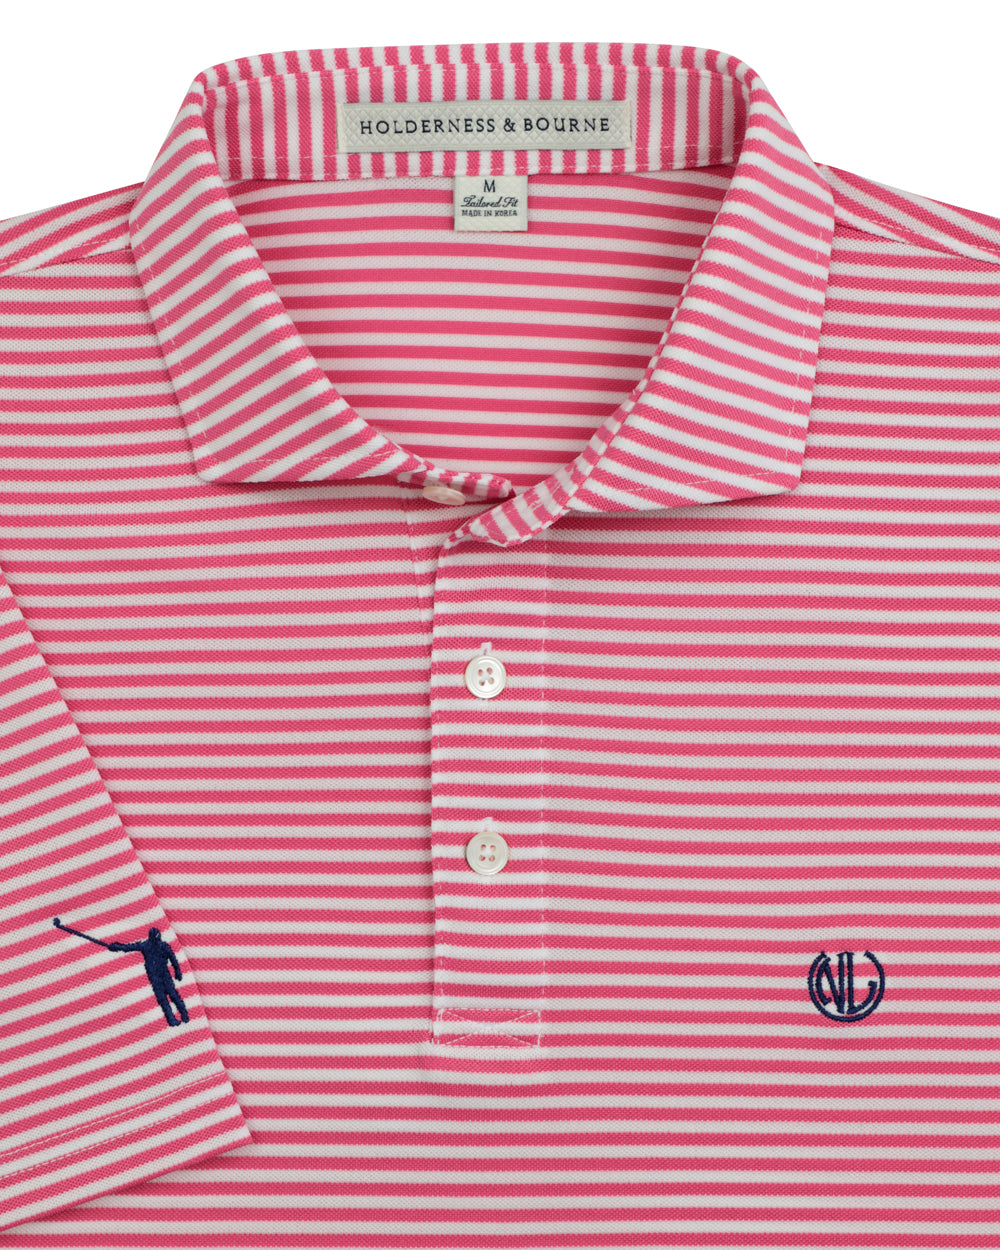 NLU + H&B Monogram Polo | Azalea & White